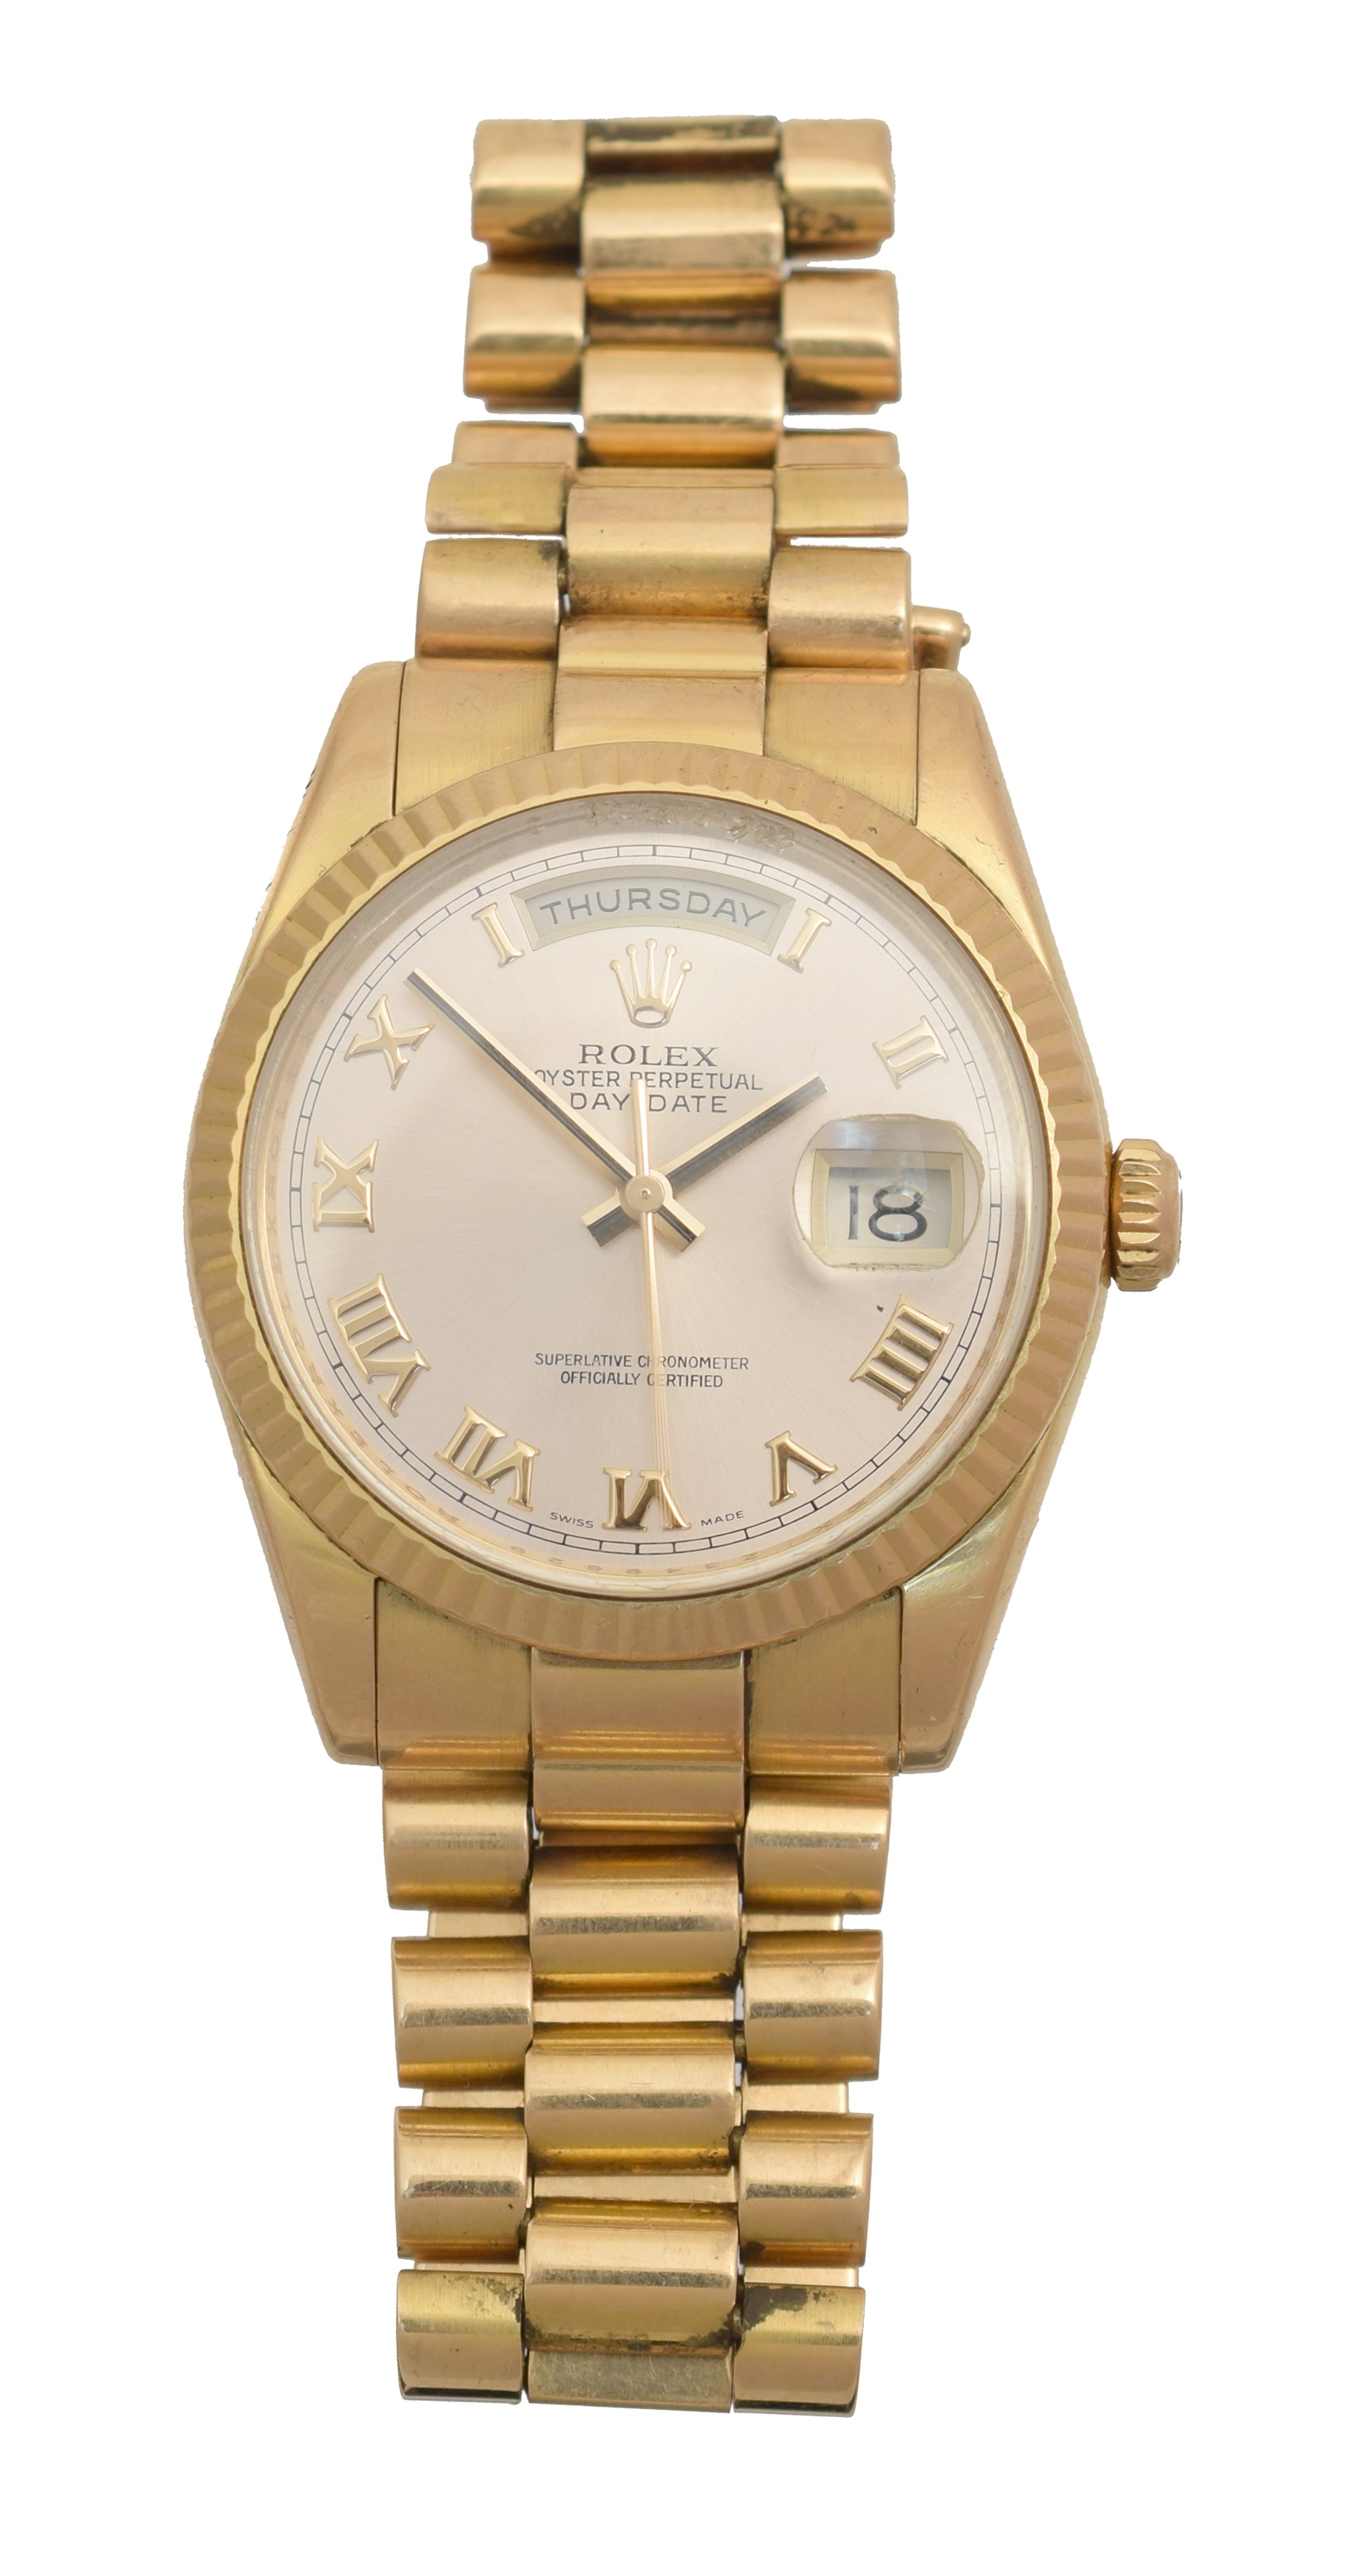 A gents 18ct gold Rolex Oyster Perpetual Day-Date wristwatch, circa 2006-7, the circular signed dial with Roman numeral hour markers, date aperture to 3 and day aperture to 12, with fluted bezel and president bracelet, model no. 118235, Z349629, Swiss assay marks, case diameter 40mm, with single spare link and papers.